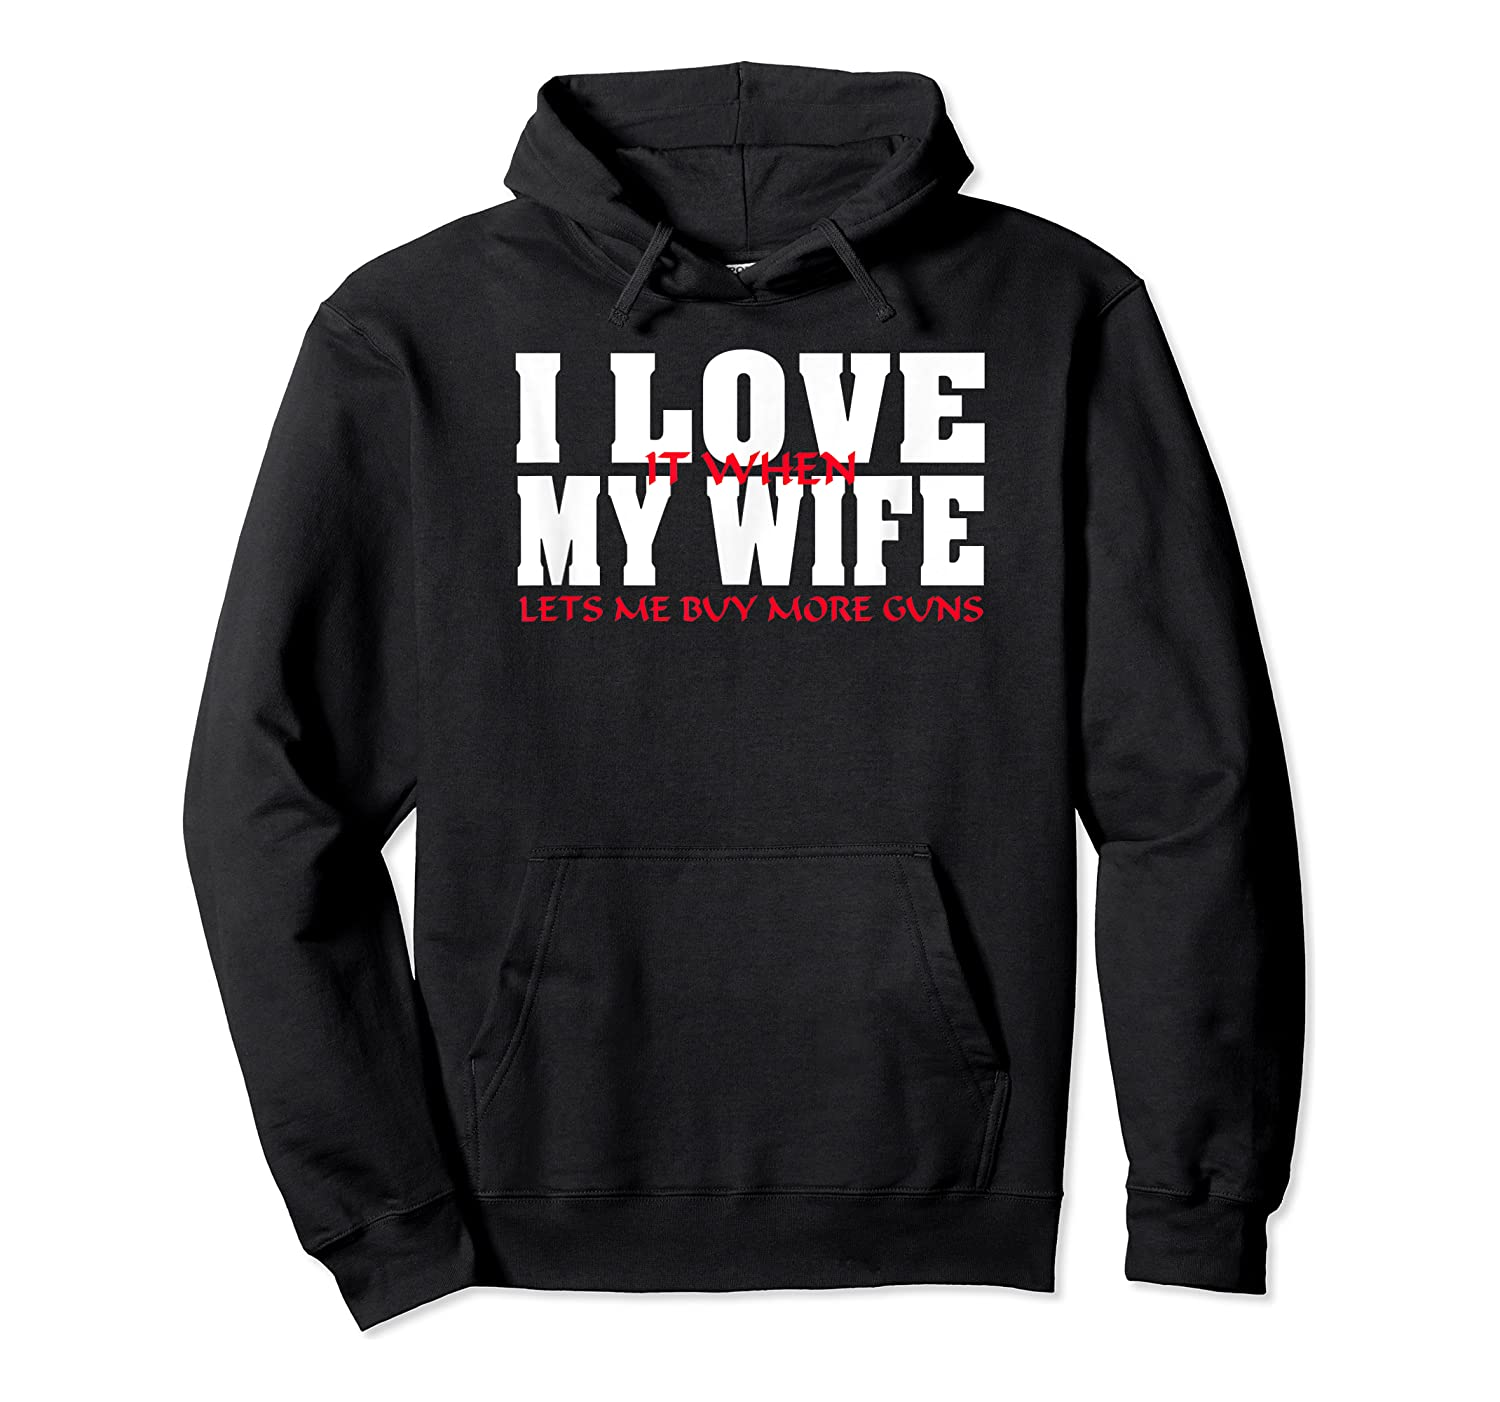 I Love It When My Wife Lets Me Buy More Guns Funny Husband T-shirt Unisex Pullover Hoodie